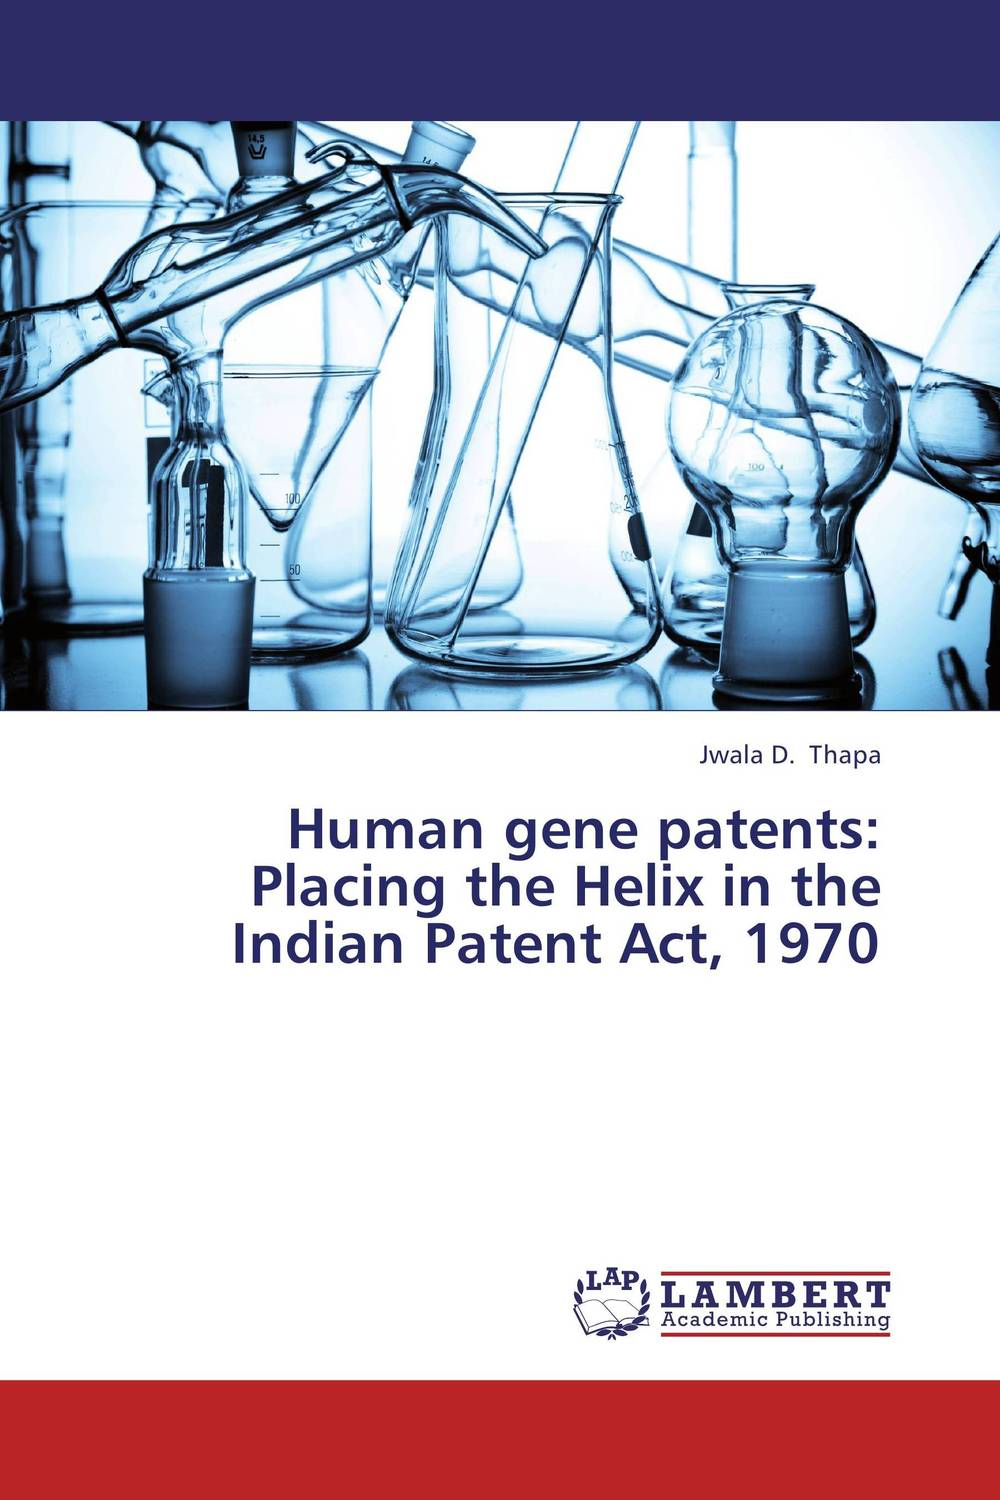 Human gene patents: Placing the Helix in the Indian Patent Act, 1970 significant pharmaceuticals reported in us patents